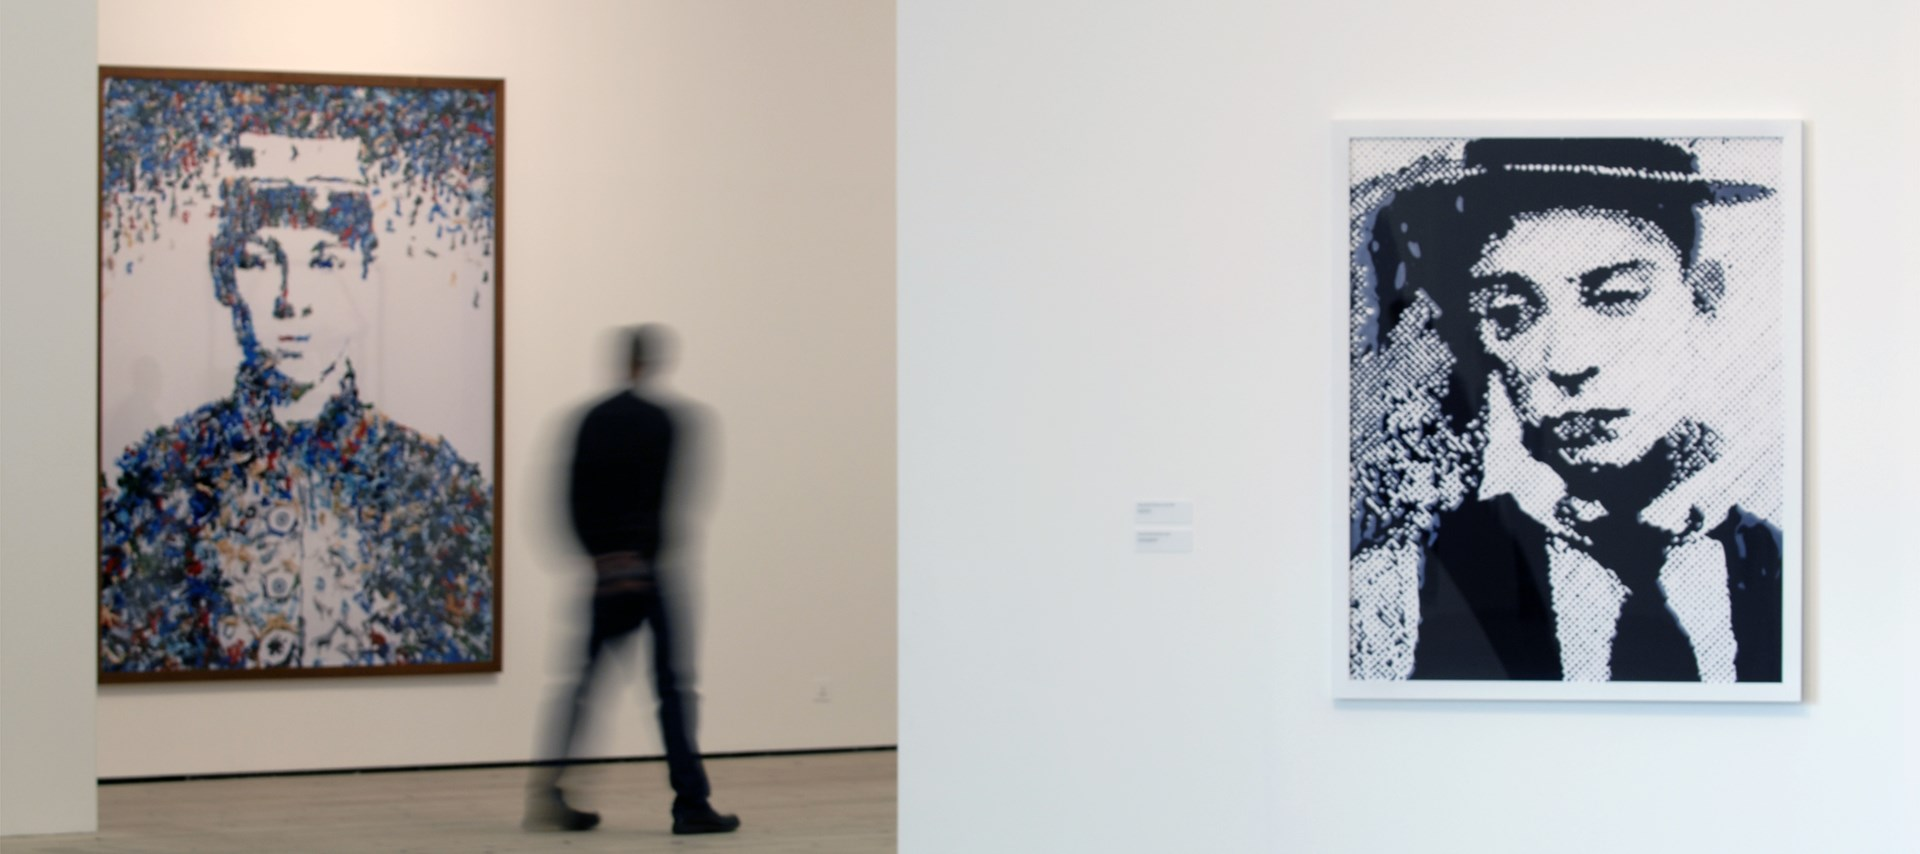 Vik Muniz: Pictures of People: Installation shot by Colin Davison